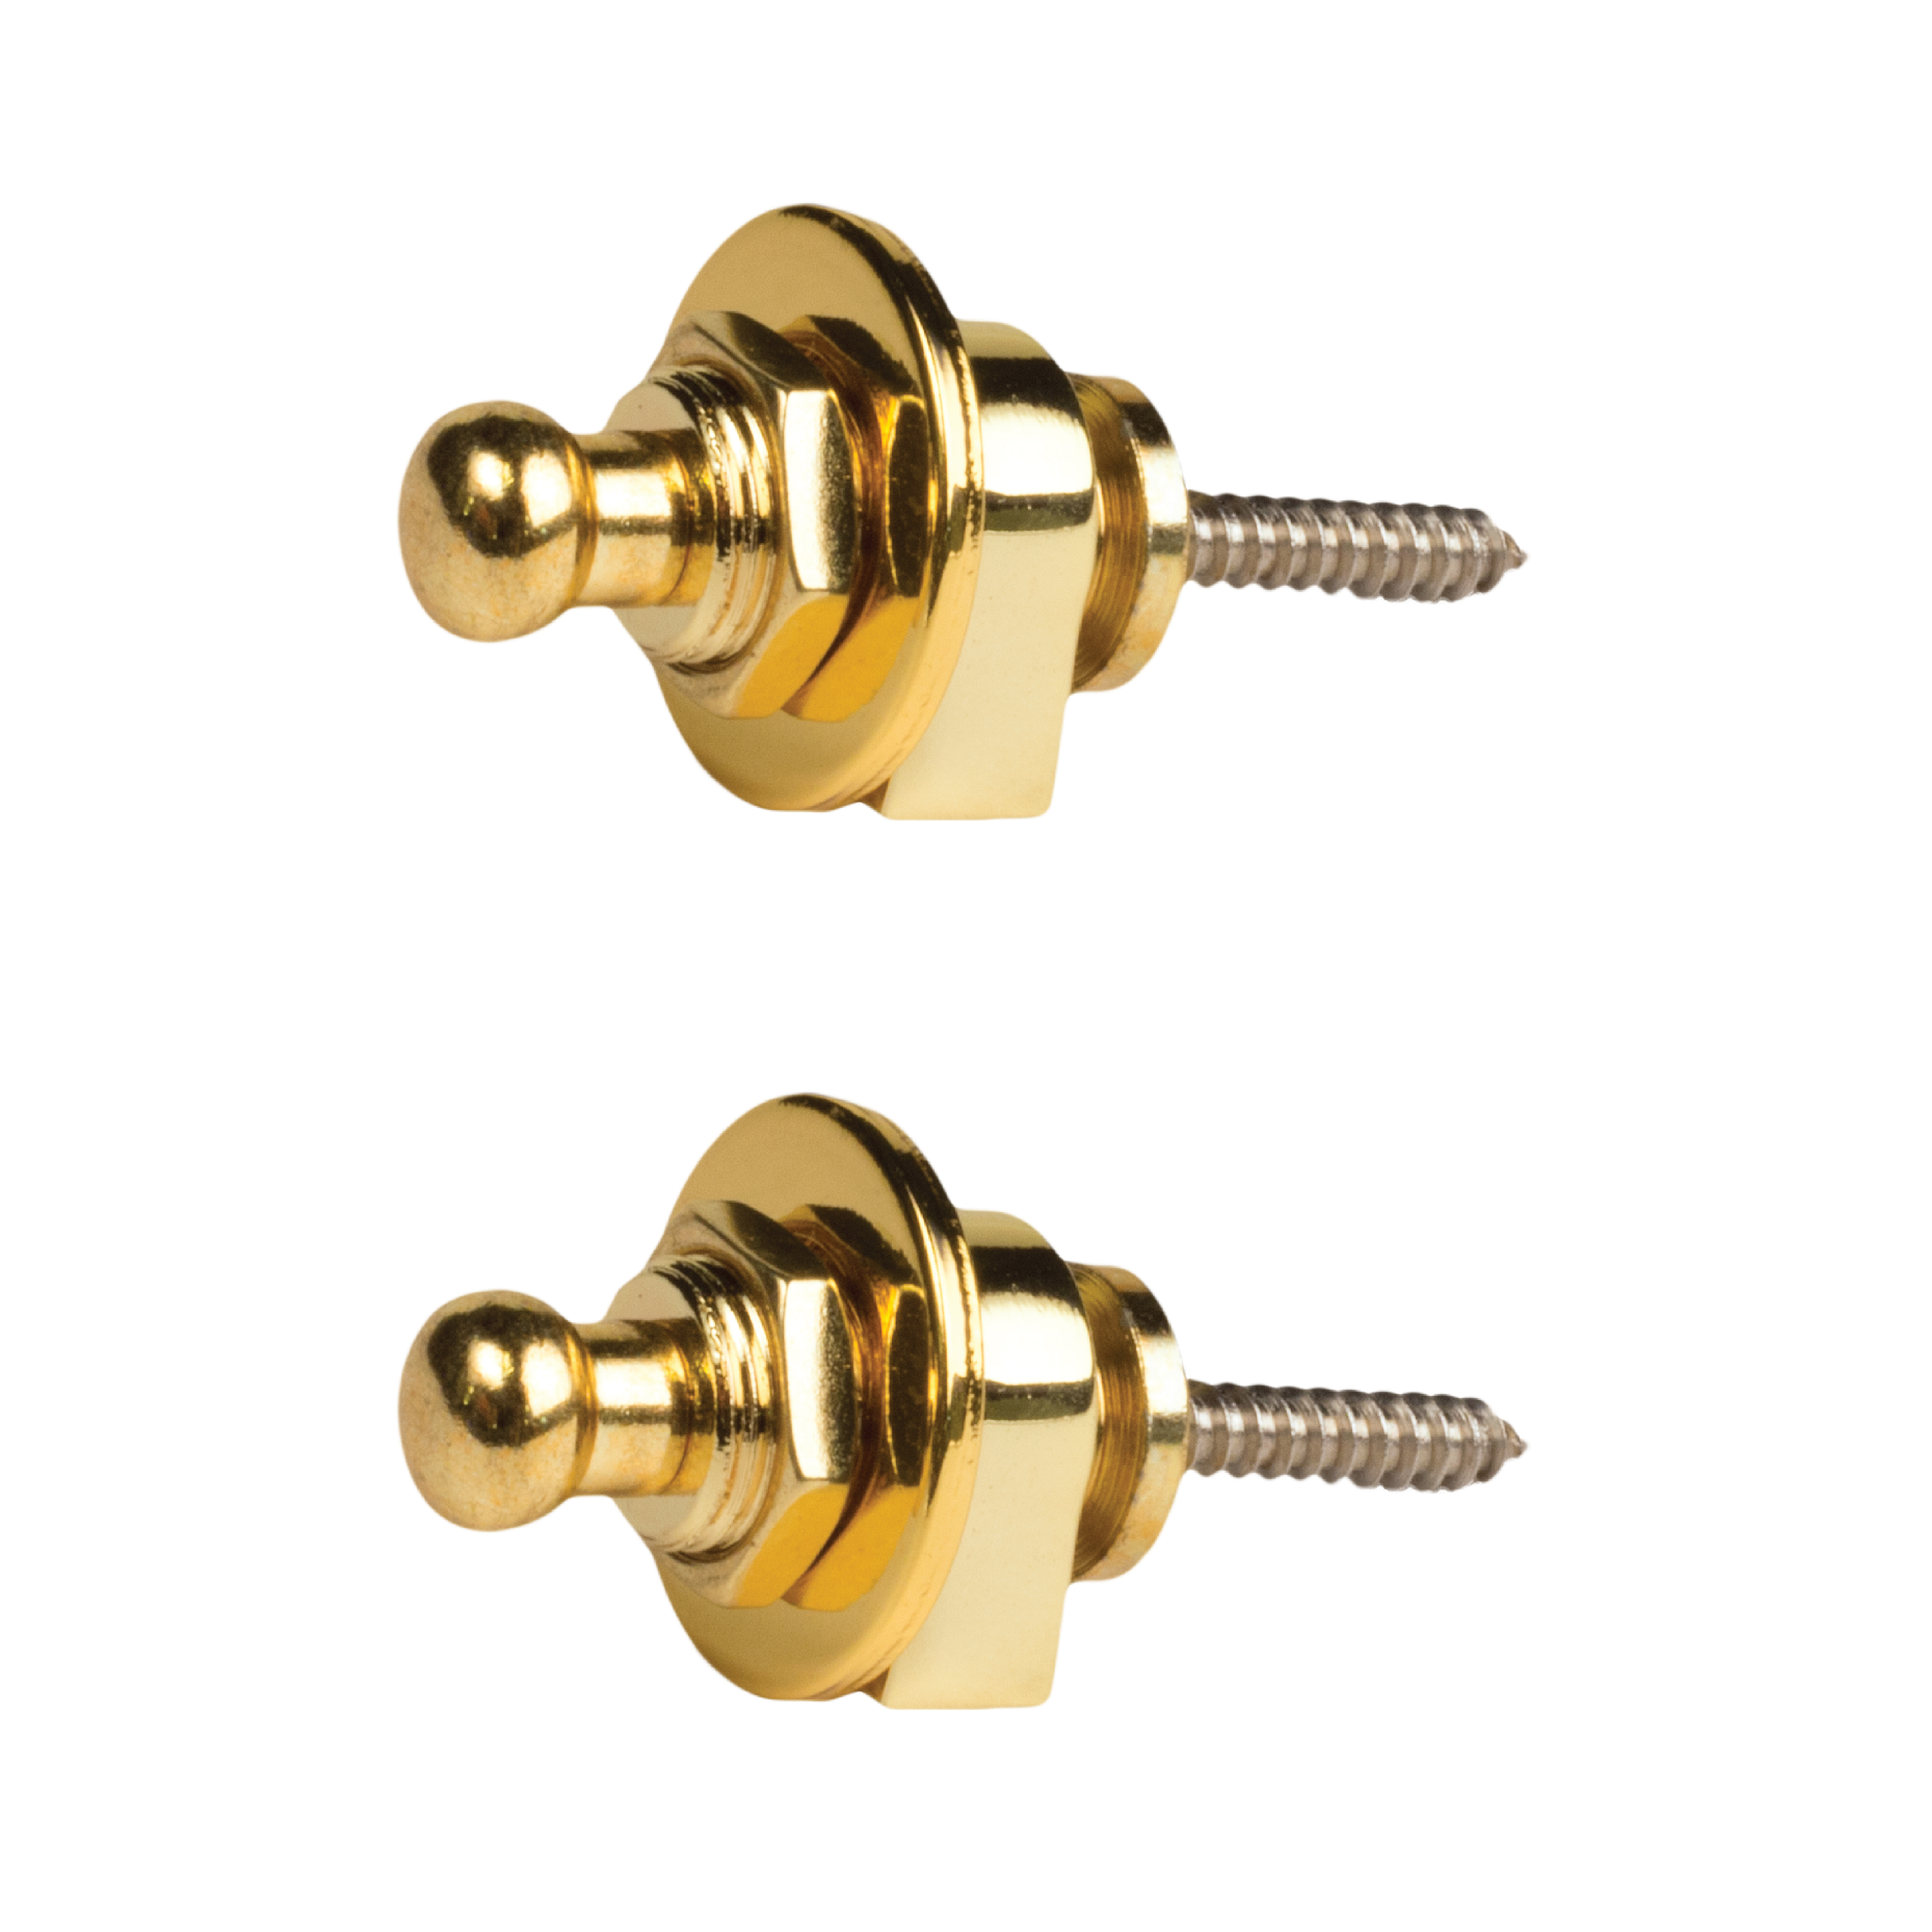 Seismic Audio 2 Pack of Gold Horseshoe Style Strap Locks for electric guitars Gold - SAGA56-2Pack